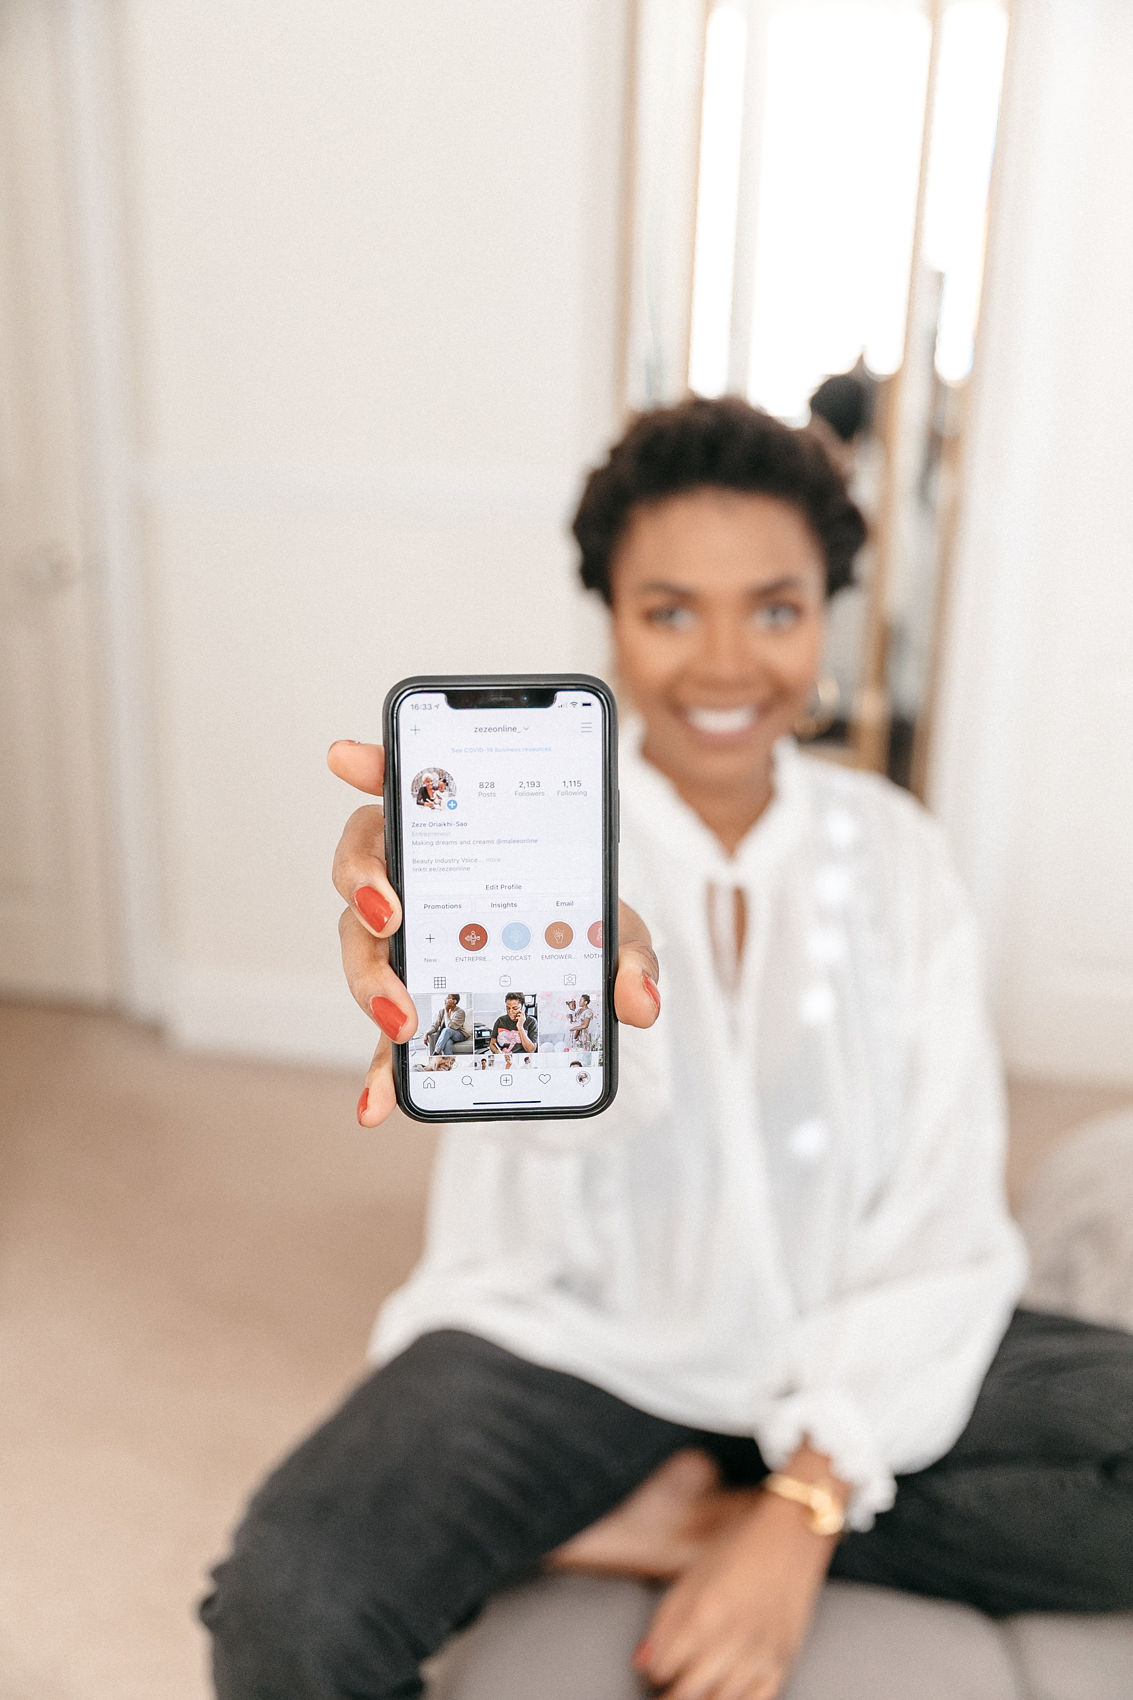 woman sitting down showing instagram profile on iPhone lifestyle blog